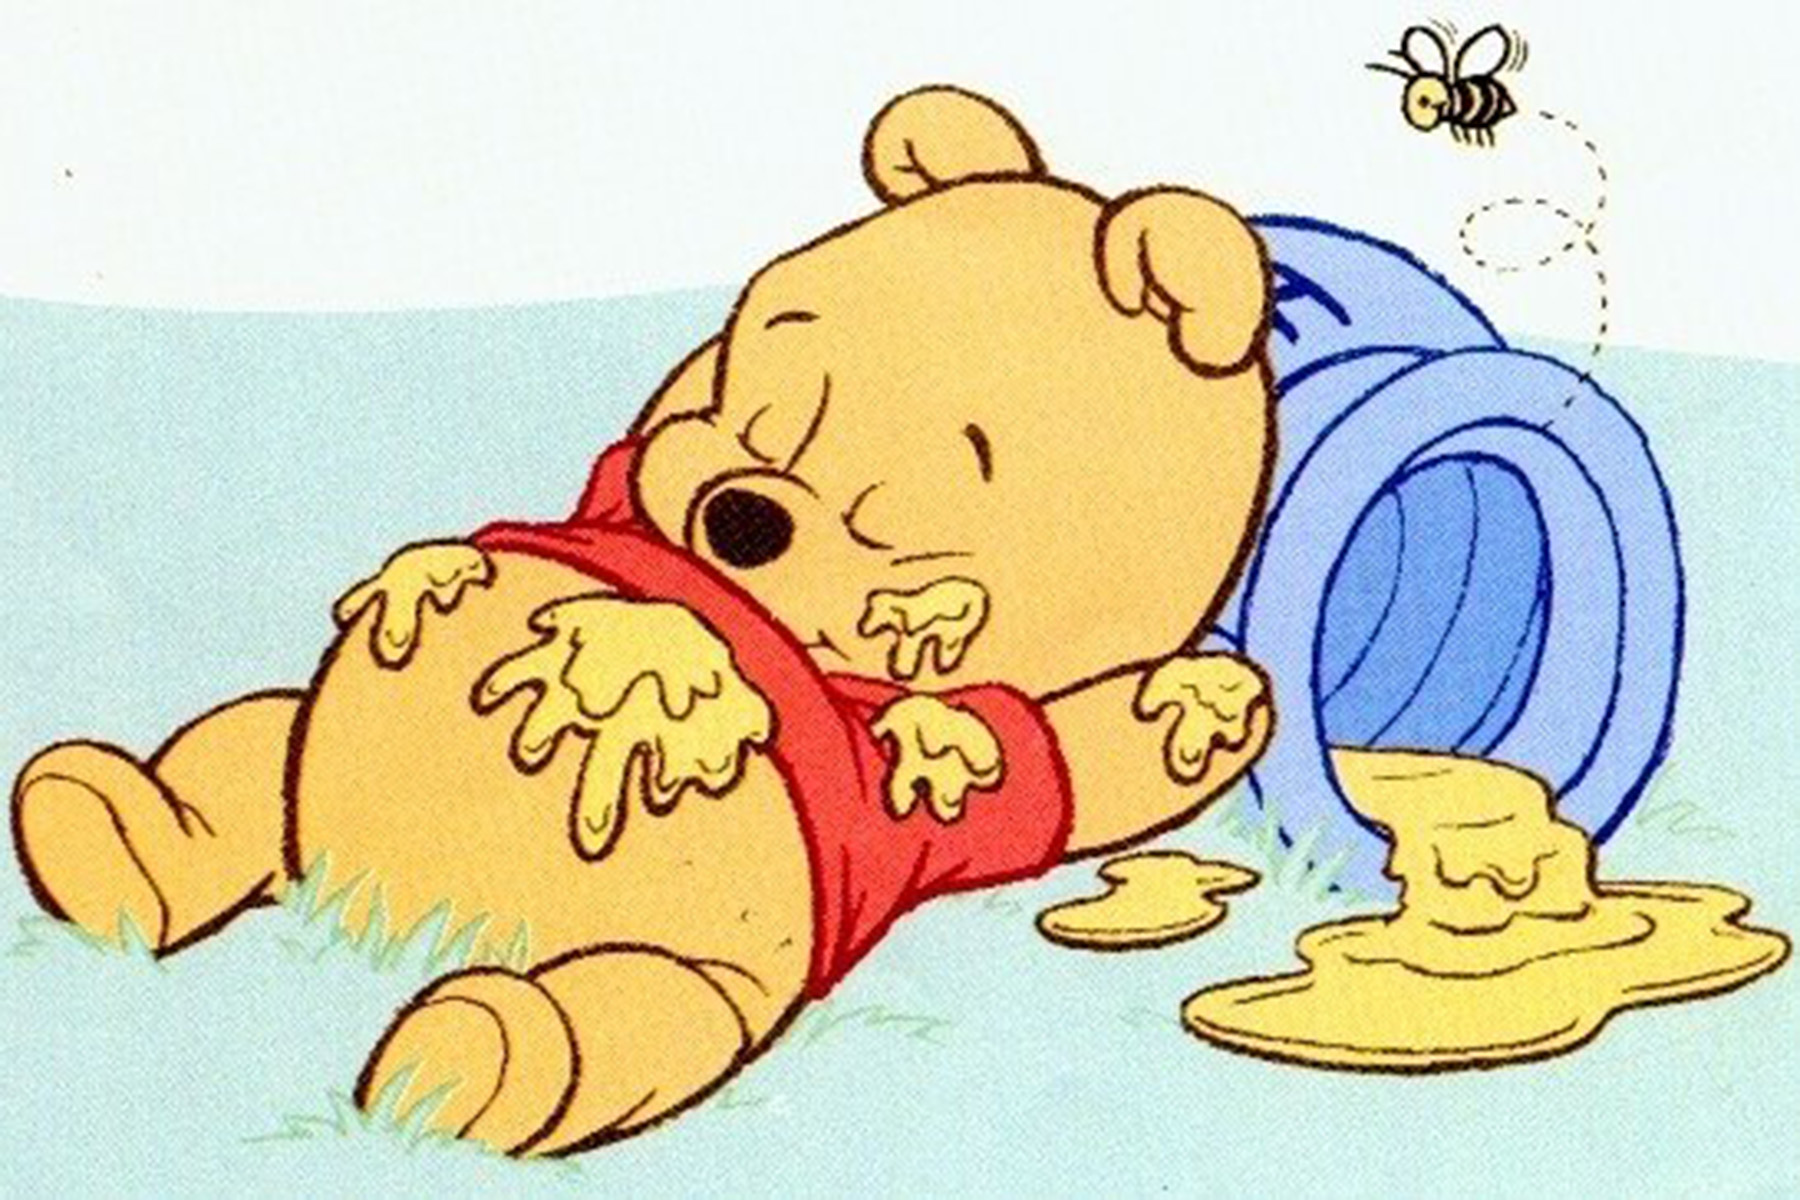 Free Download Winnie The Pooh Cute Wallpapers 9457 Wallpaper